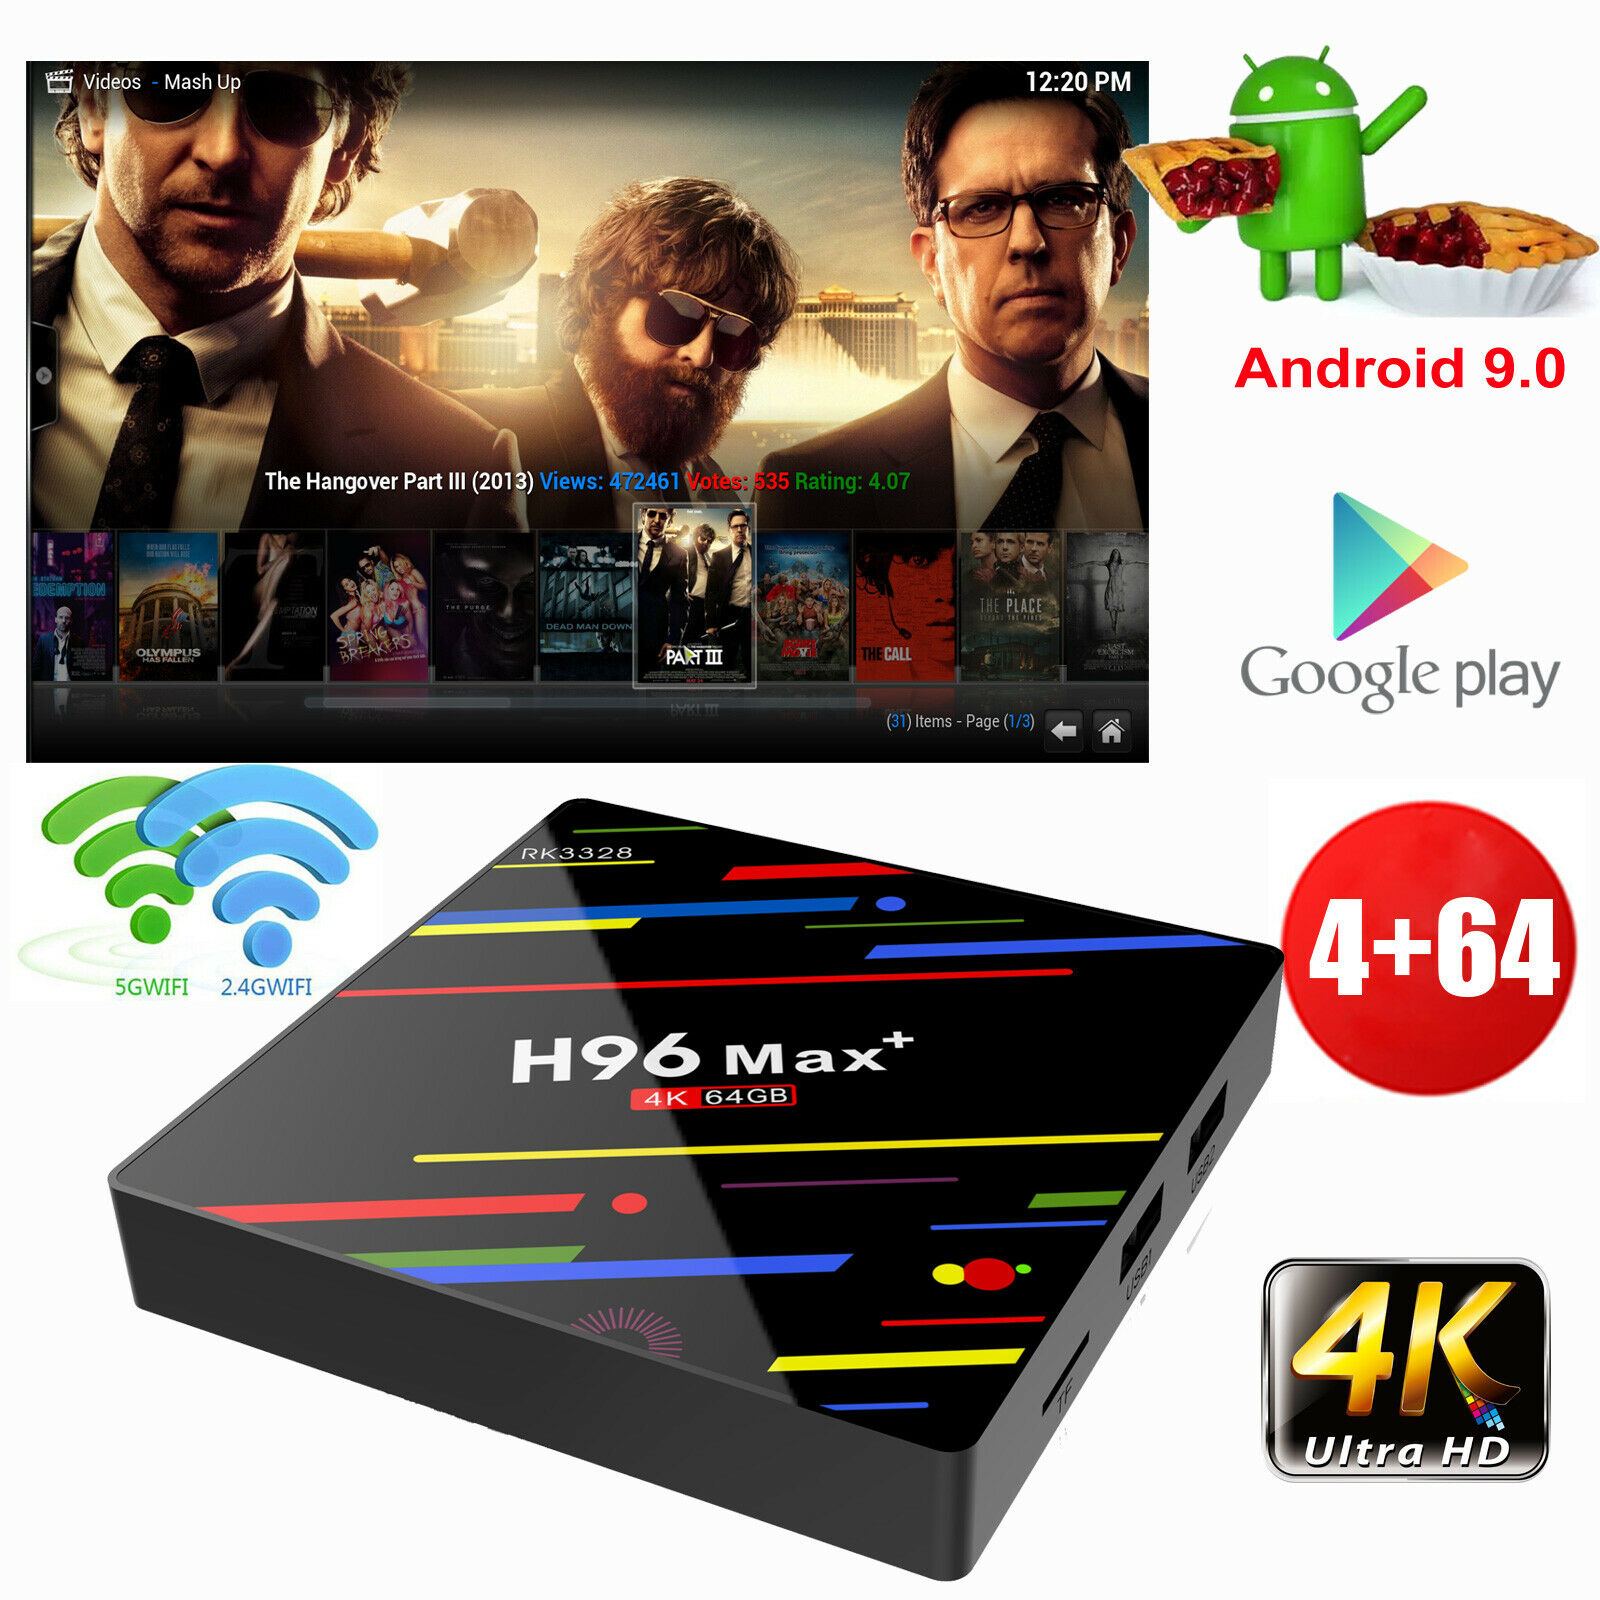 NEW H96MAX+ 4+64G Android 9.0 Quad Core 4K Smart TV BOX DUAL WIFI BT 4.0 USB 3.0 Featured